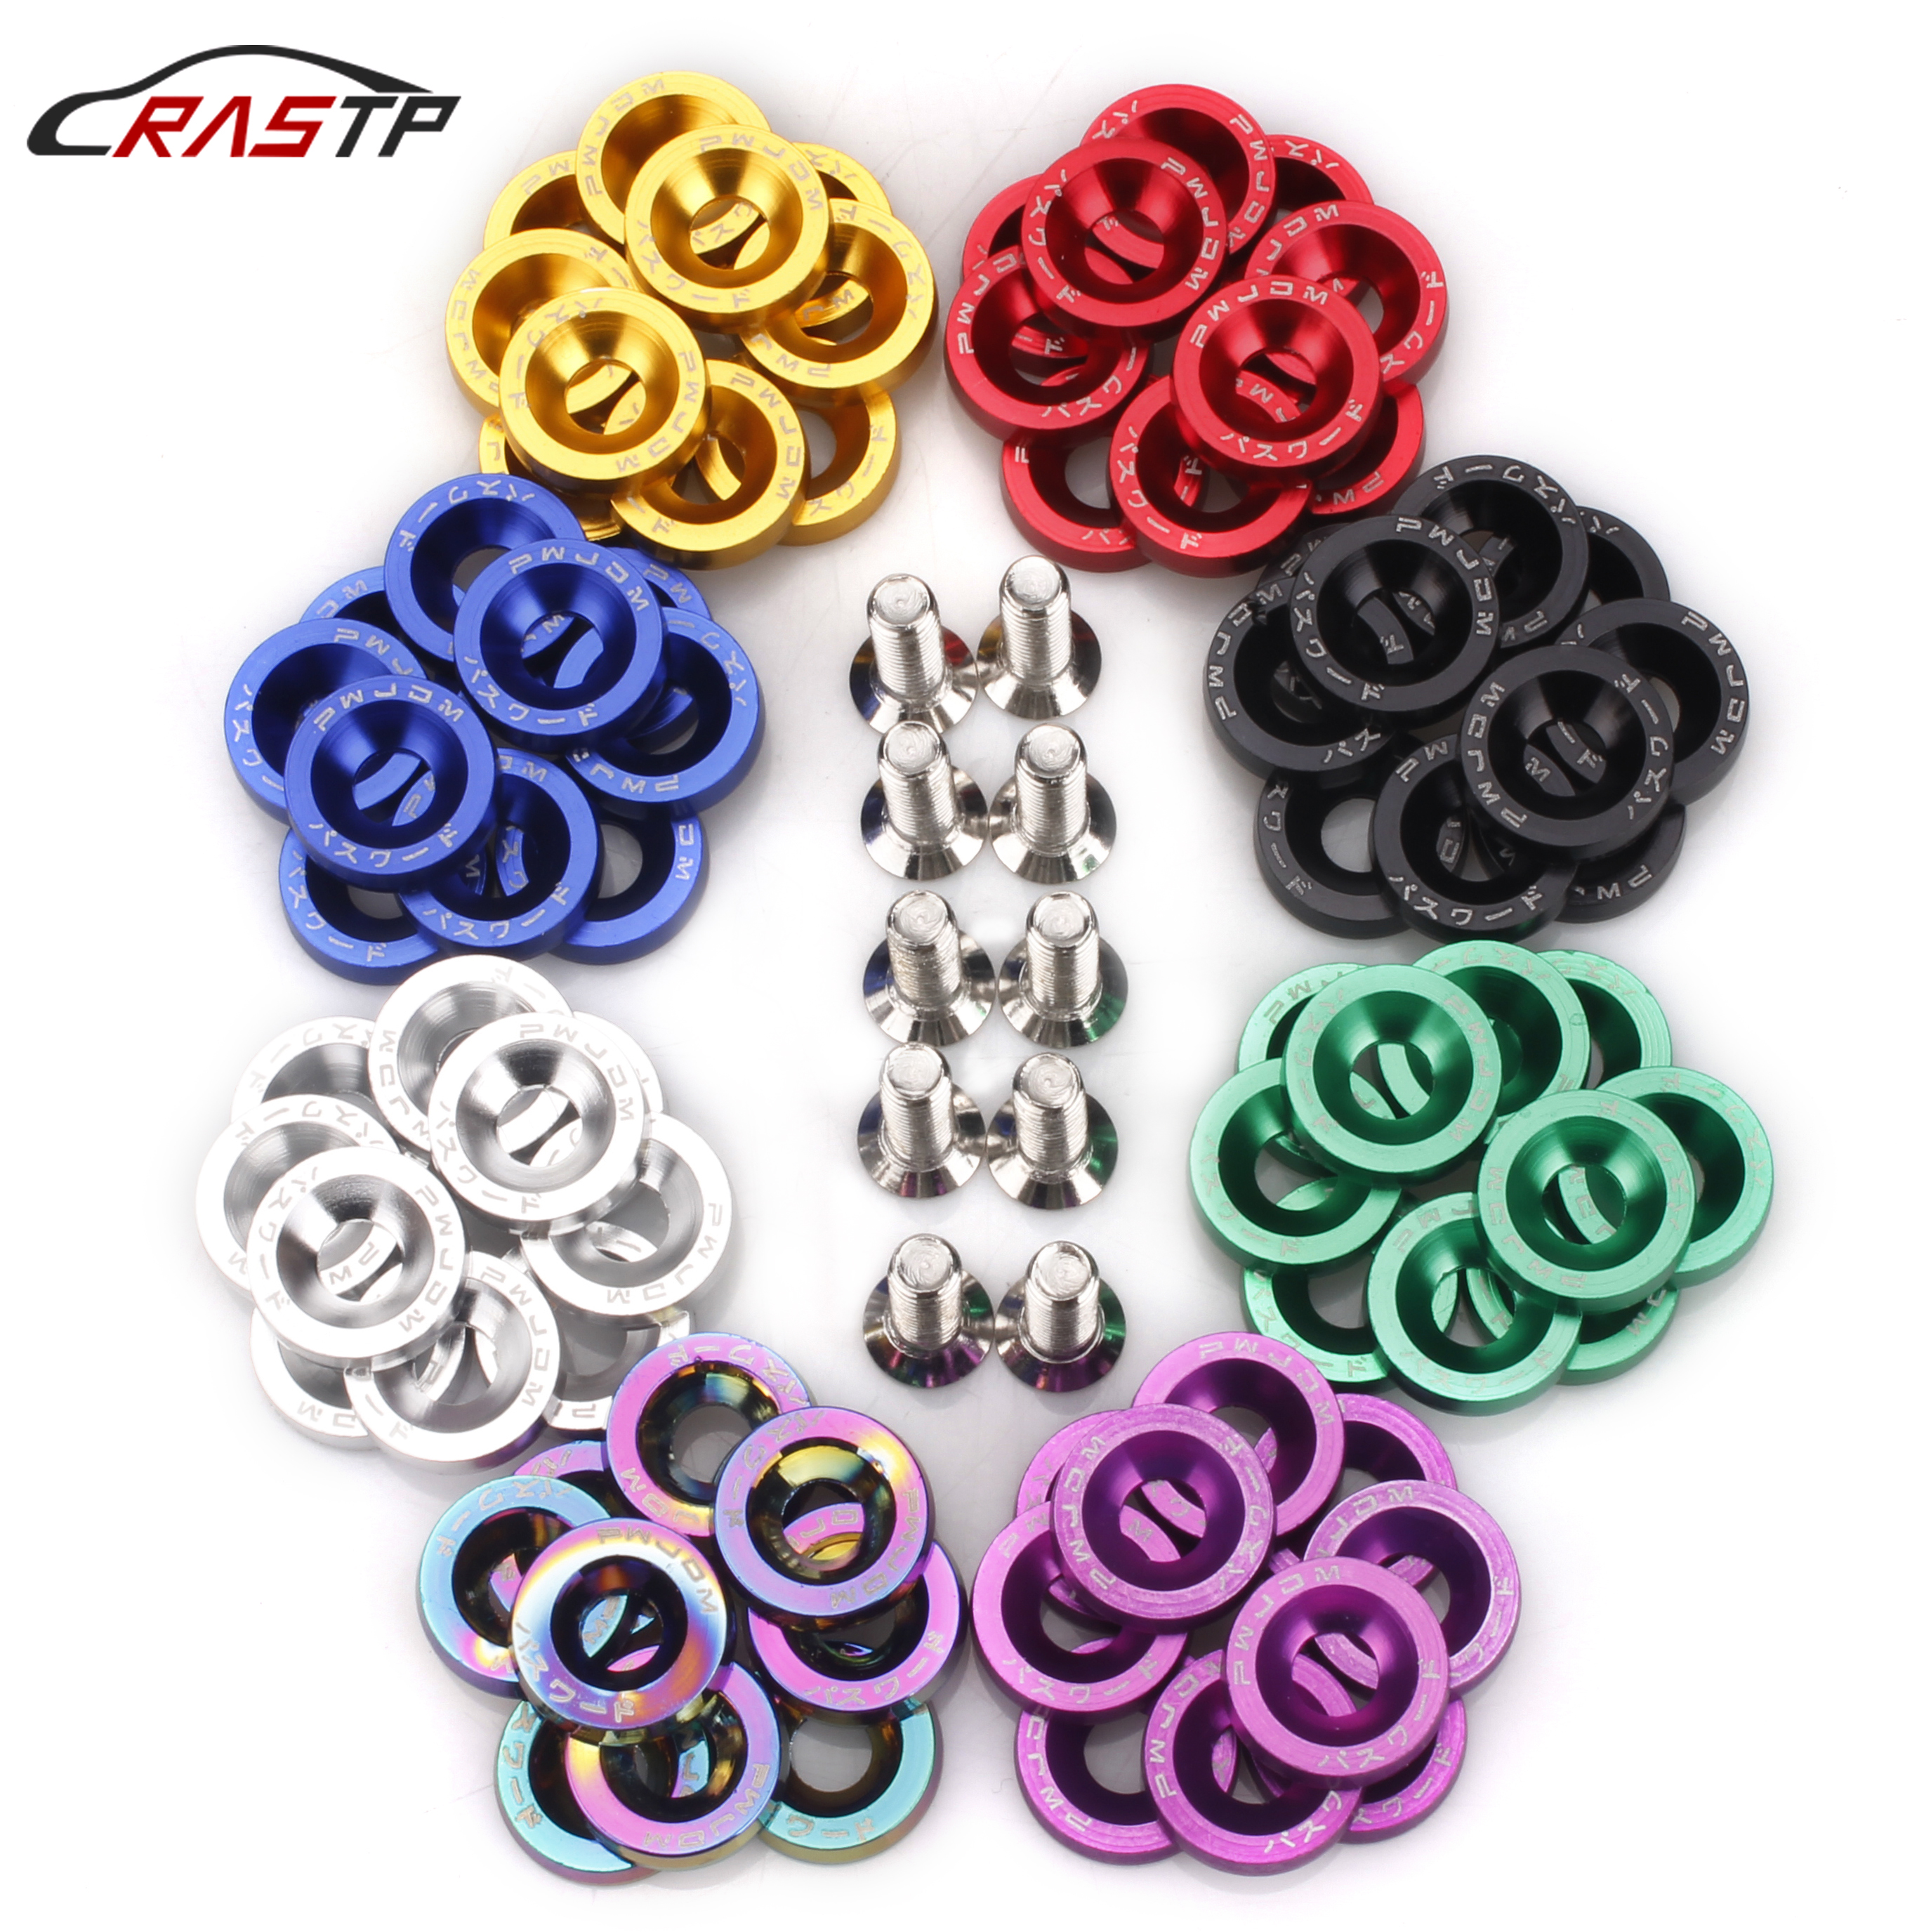 10Pcs Password jdm Car Styling Modifications Fender Washer M6 Bolt License Plate Screw Car Screw Univesal for Most Car RS-QRF002